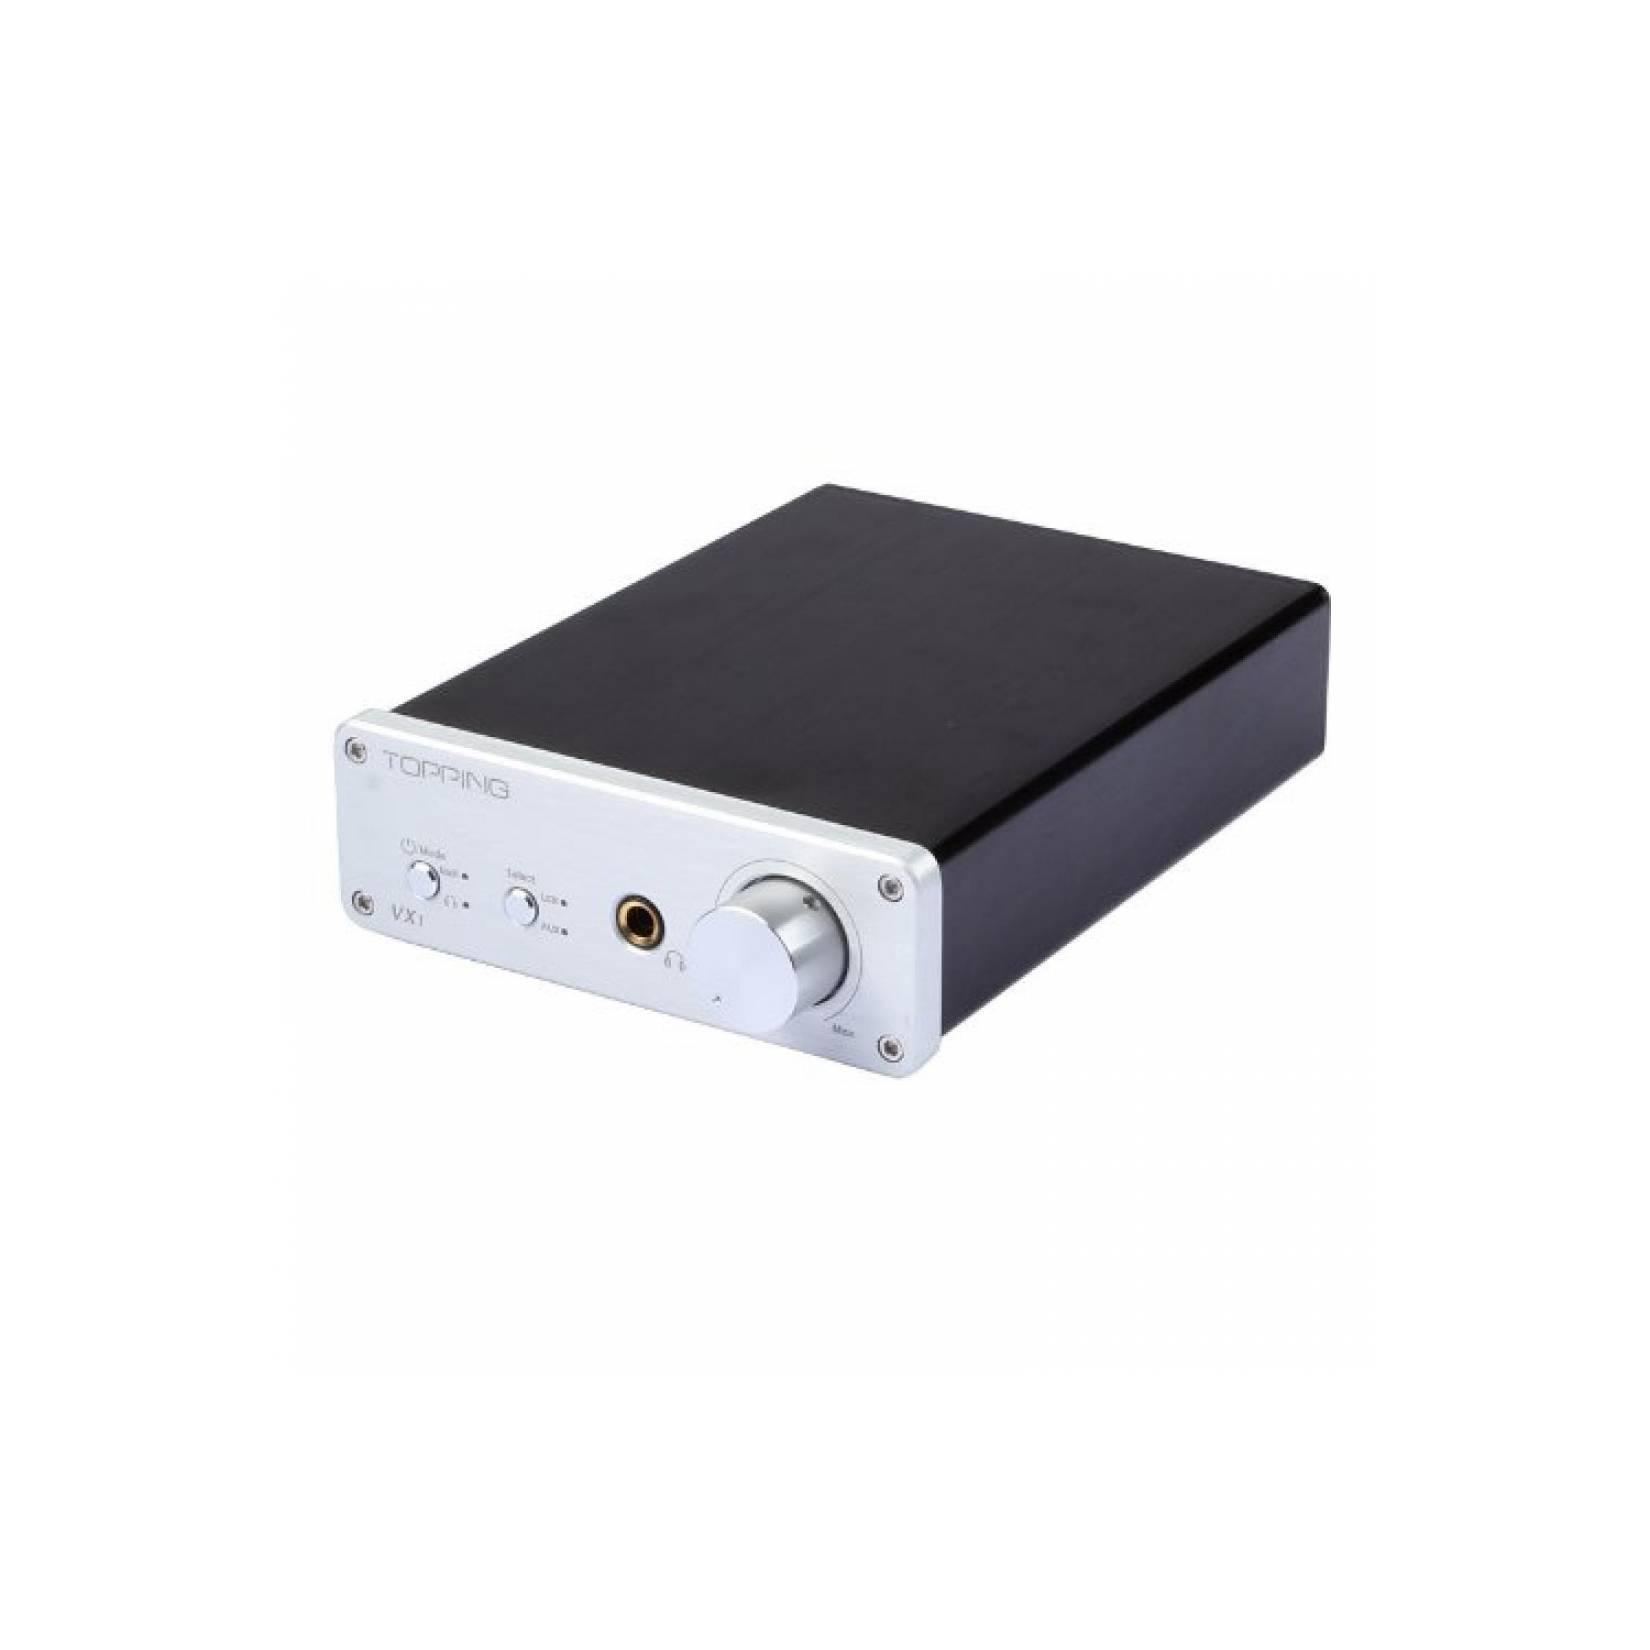 Buy Sell Cheapest Keluarga Besar Dac Best Quality Product Deals Philips Fidelio M2l Headphone Hitam Topping Vx1 Digital Amplifier Ta2021 With And Amp